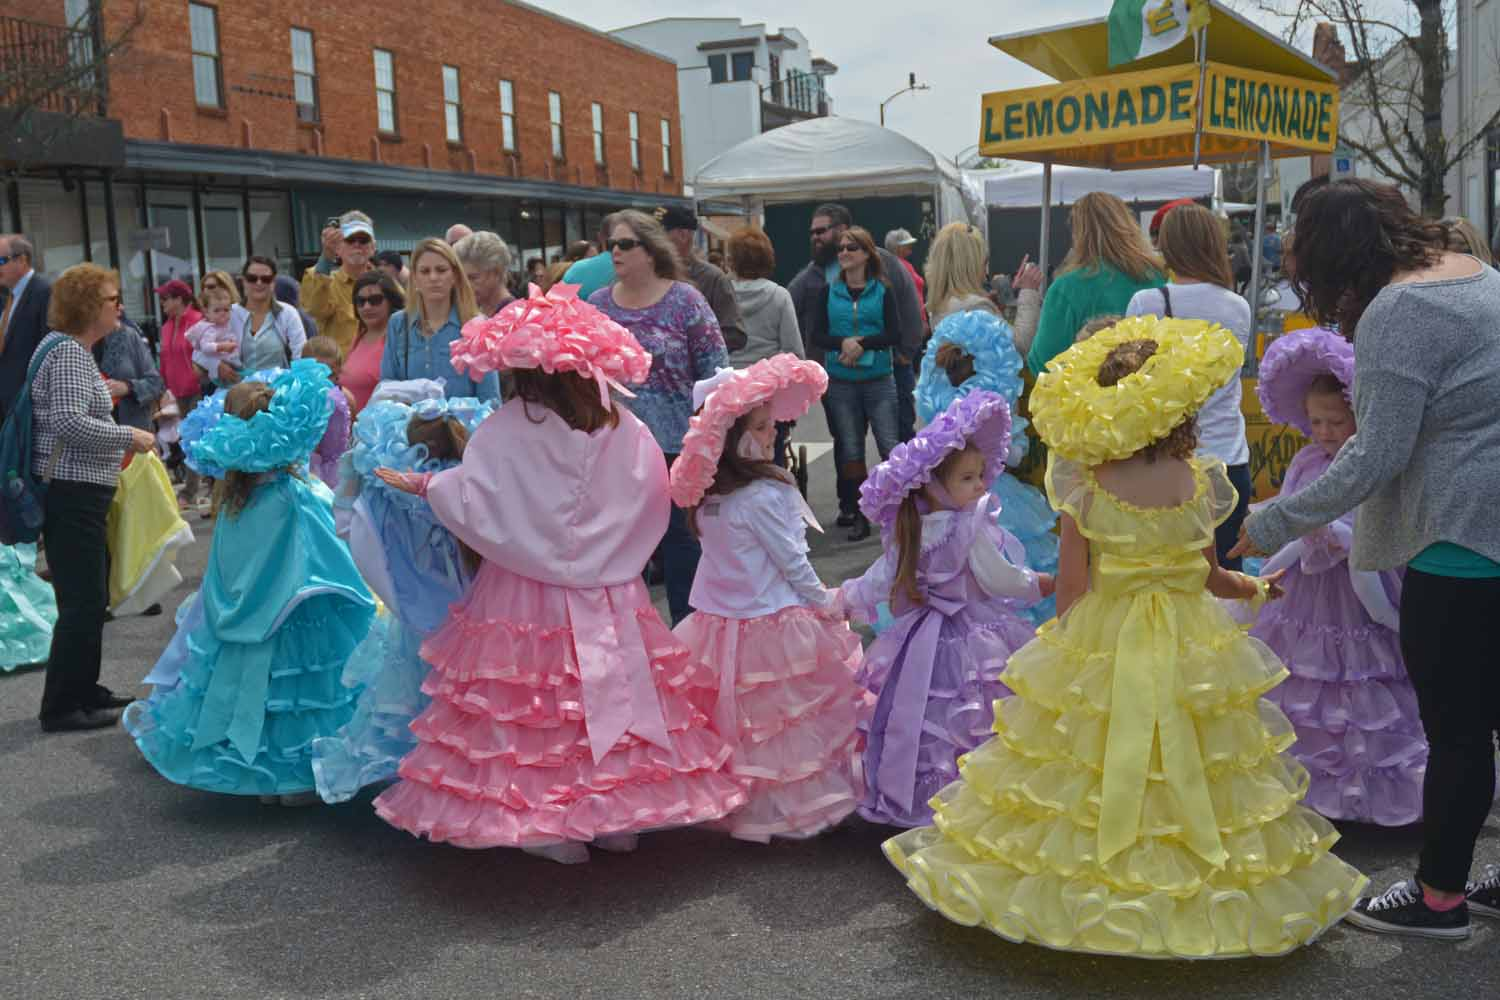 If you come to Mobile for a festival you will find plenty of colorful southern dress